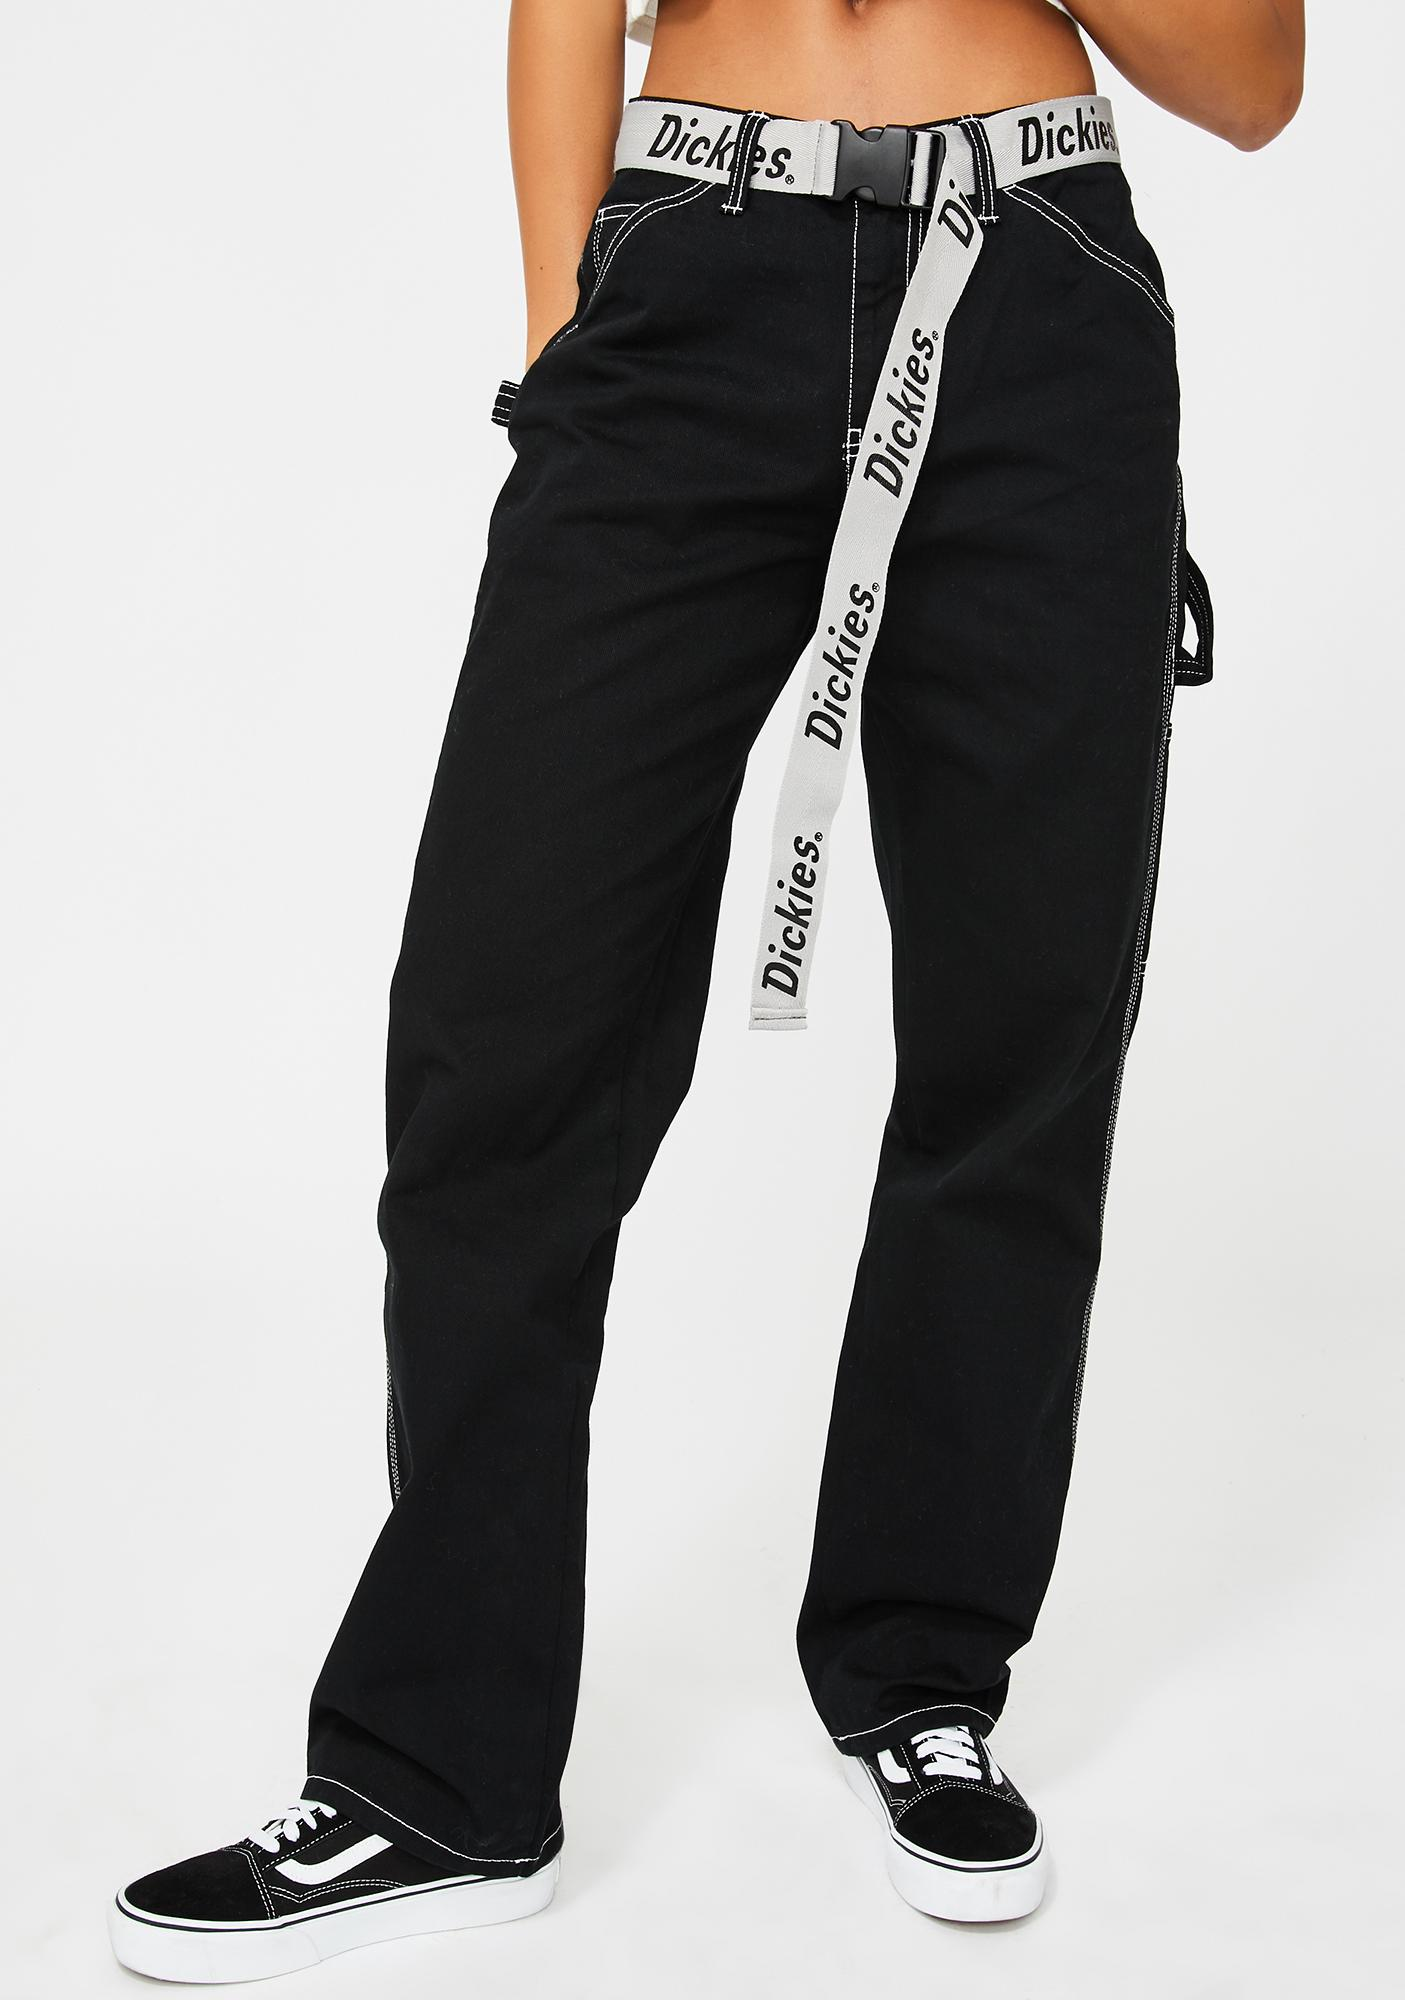 Dickies Girl Black Carpenter Reflective Belt Pants